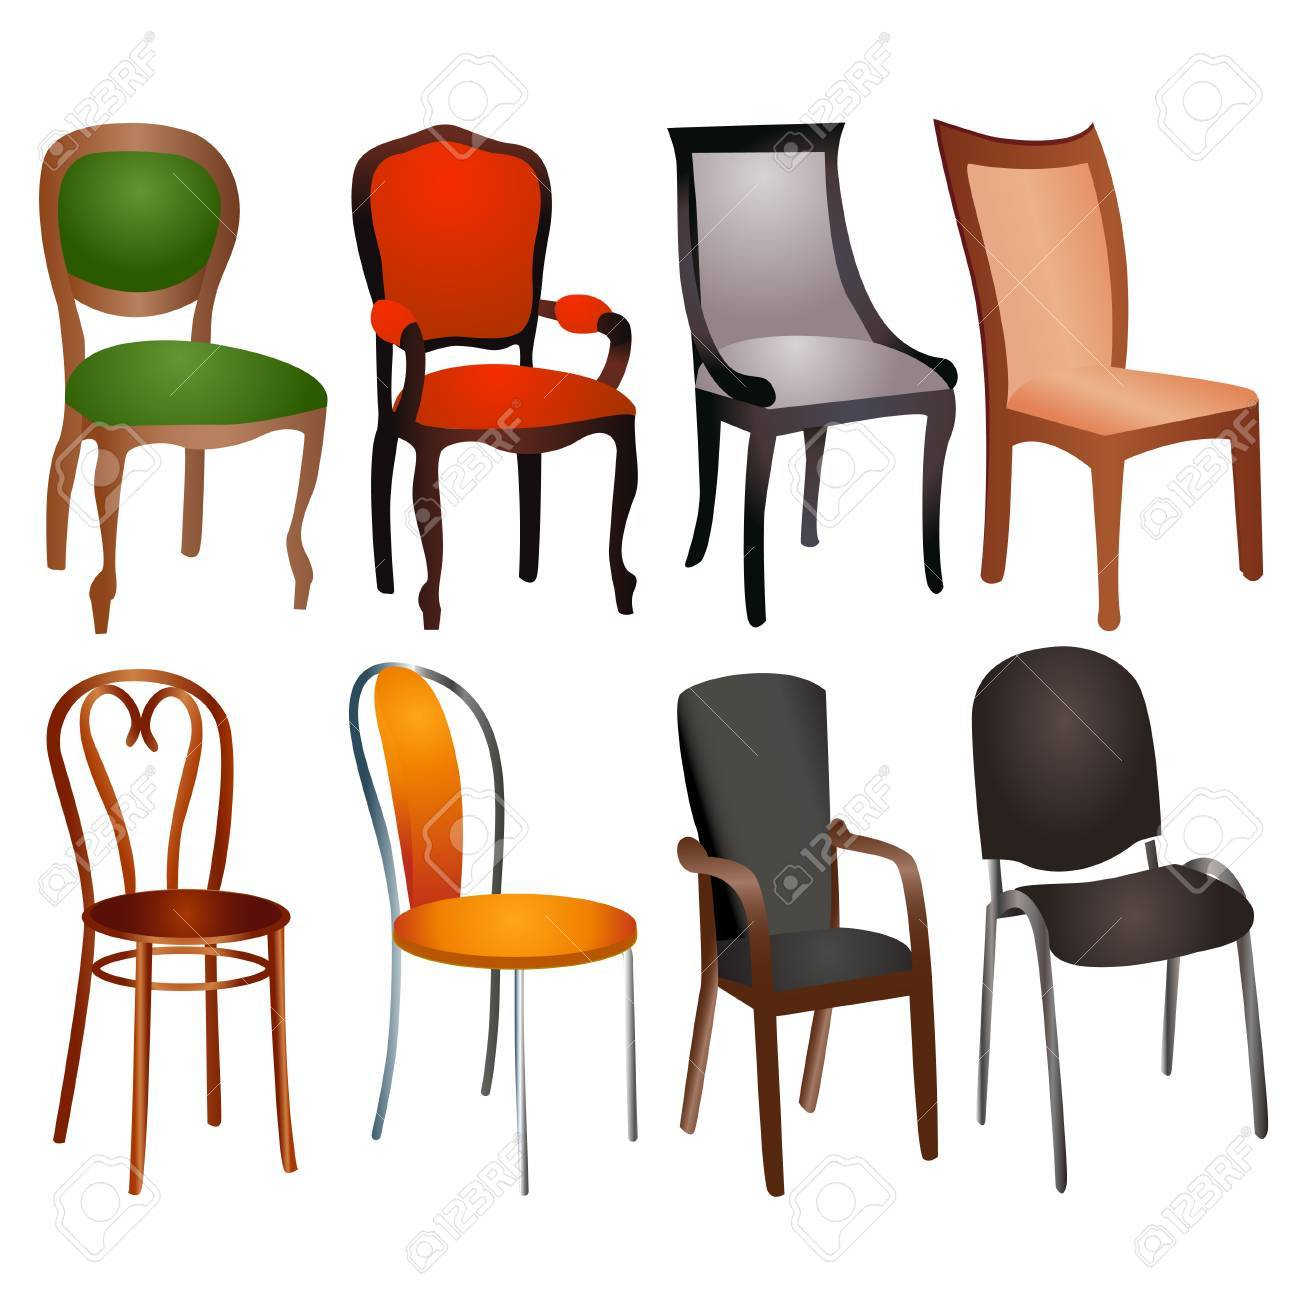 Illustration Set Of Different Chairs For Home And Office Royalty ...